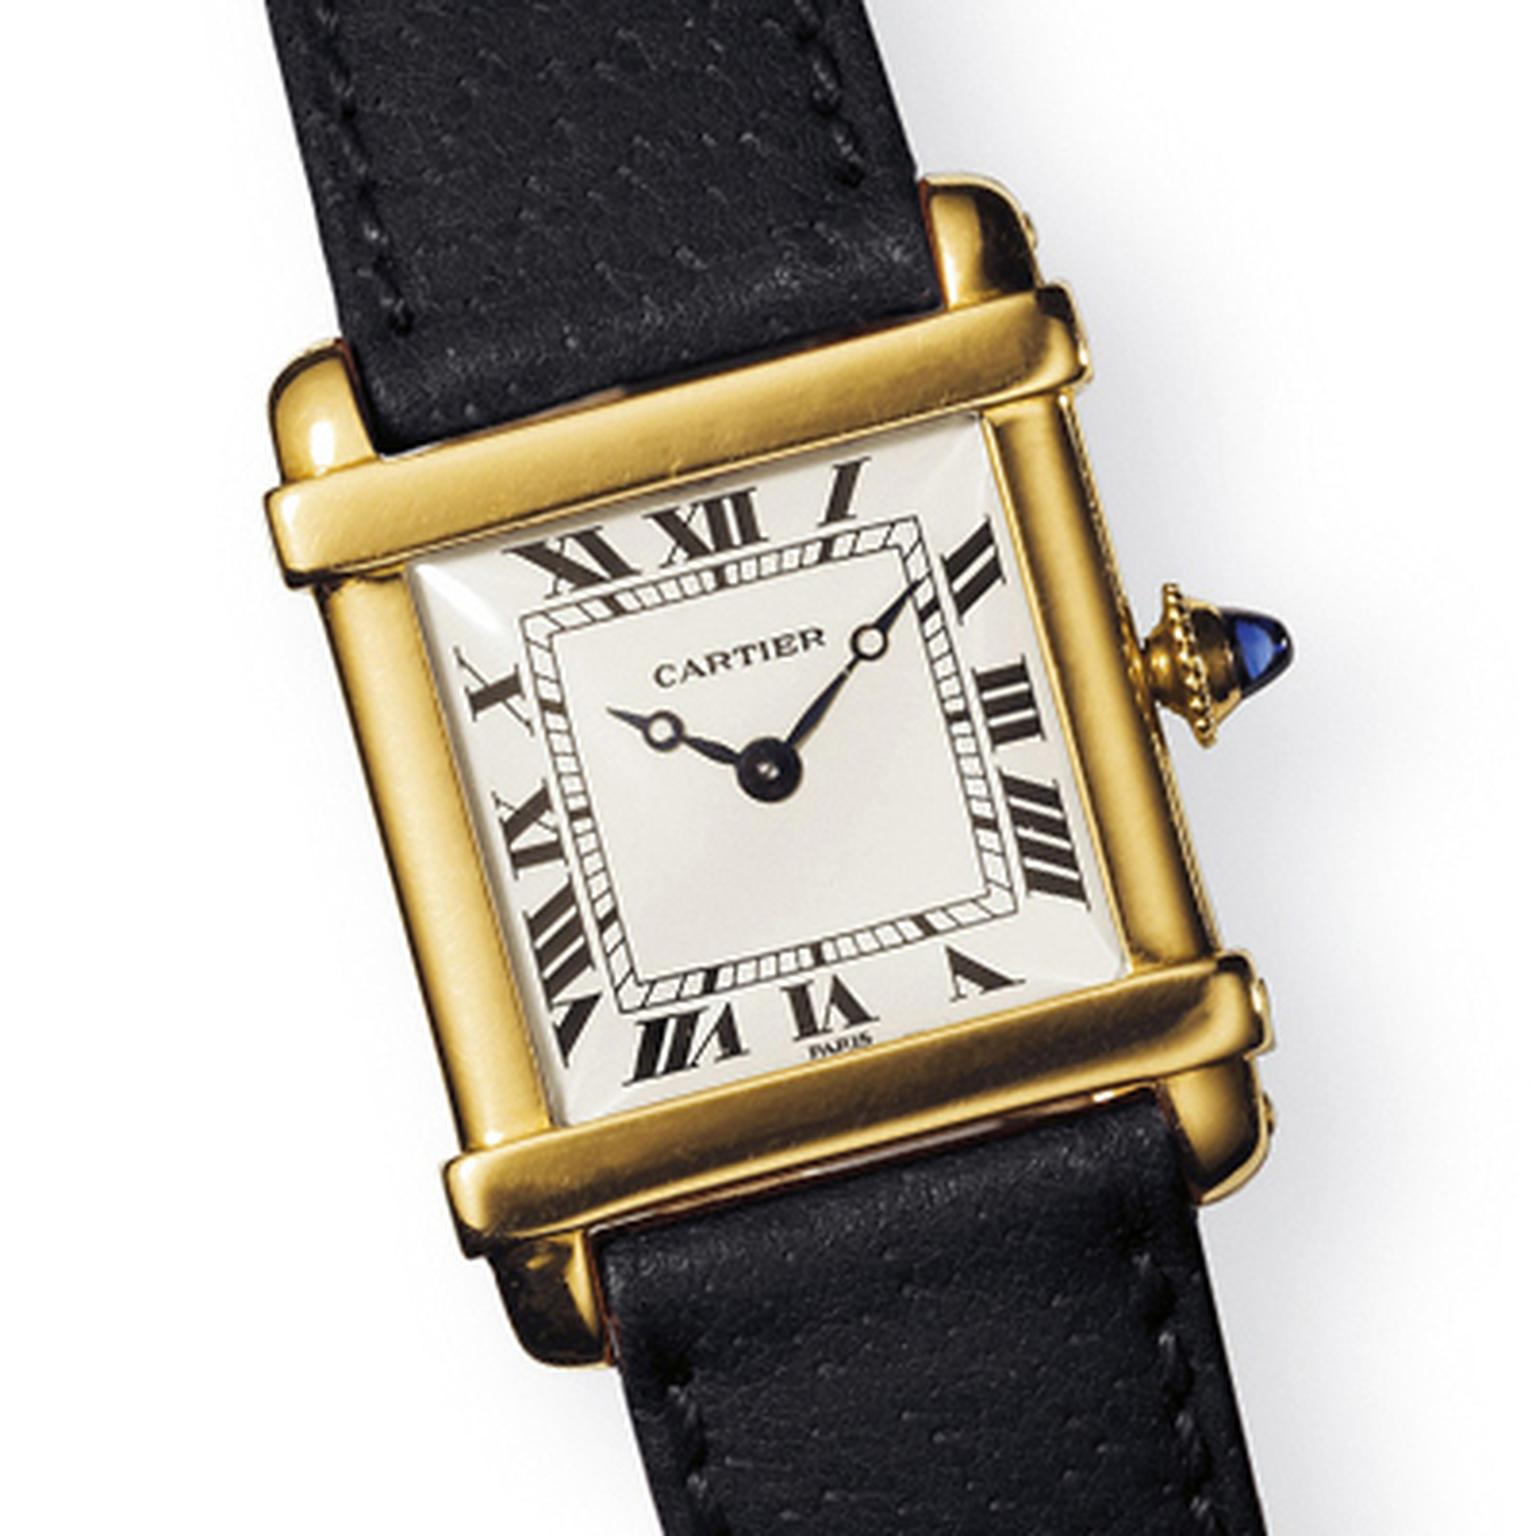 Cartier Tank Chinoise watch 1921